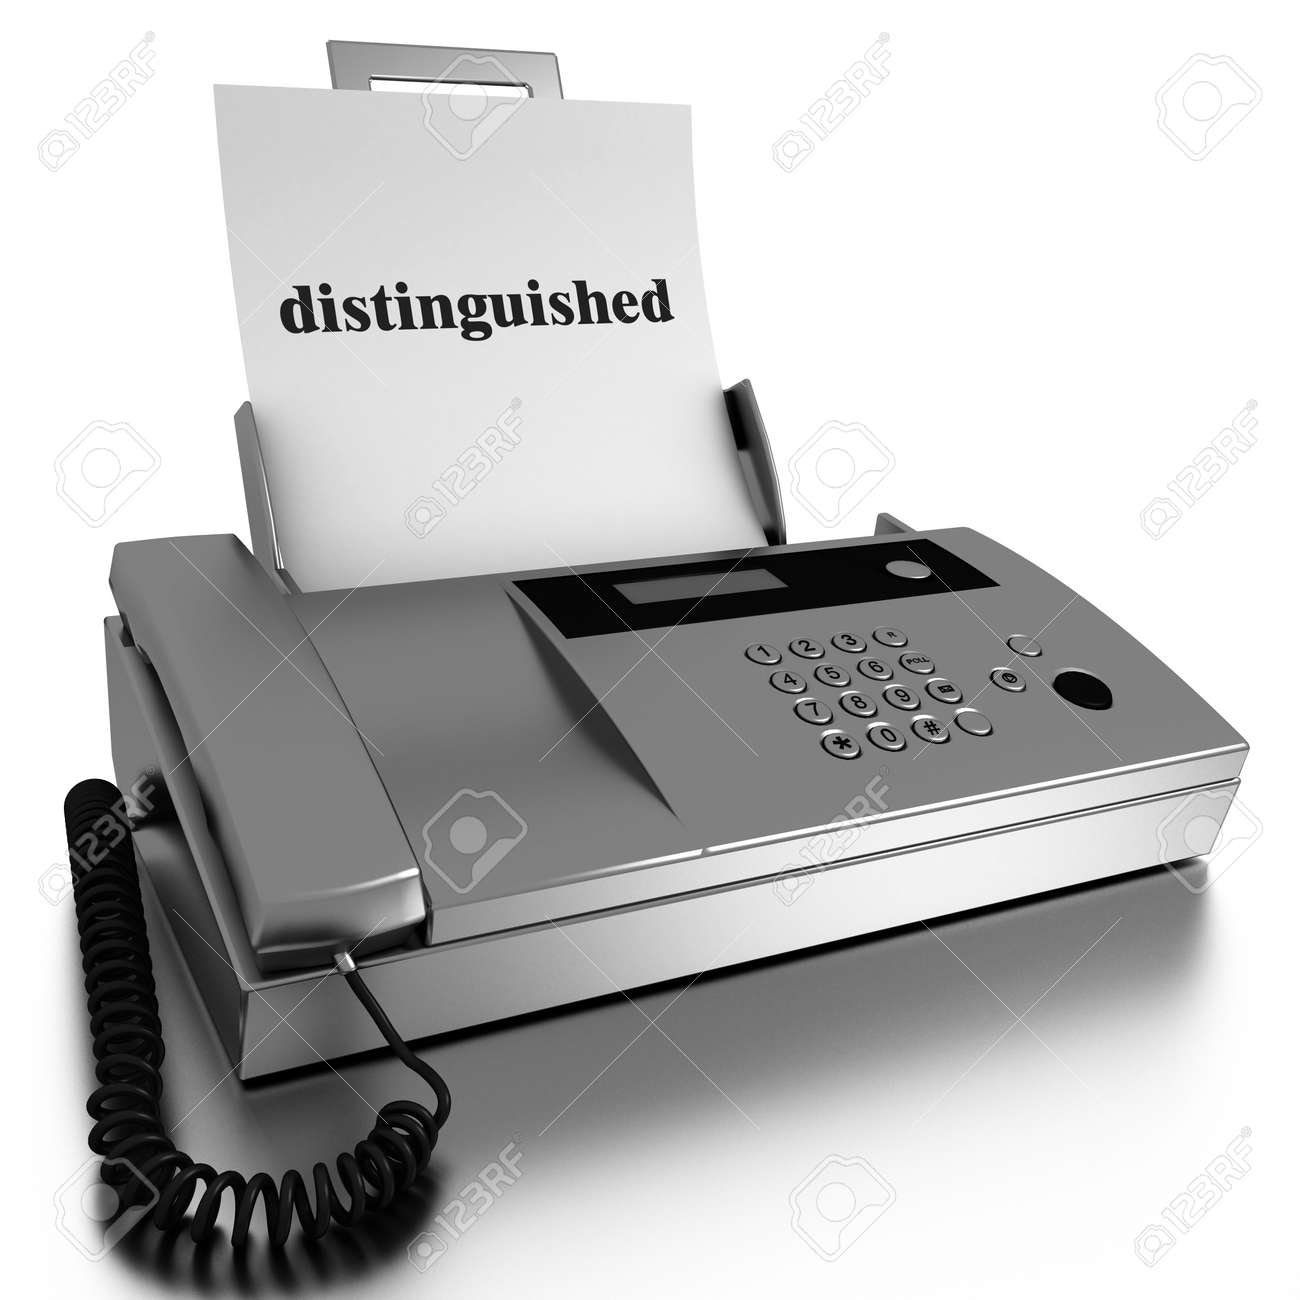 Word printed on fax on white background Stock Photo - 13466297